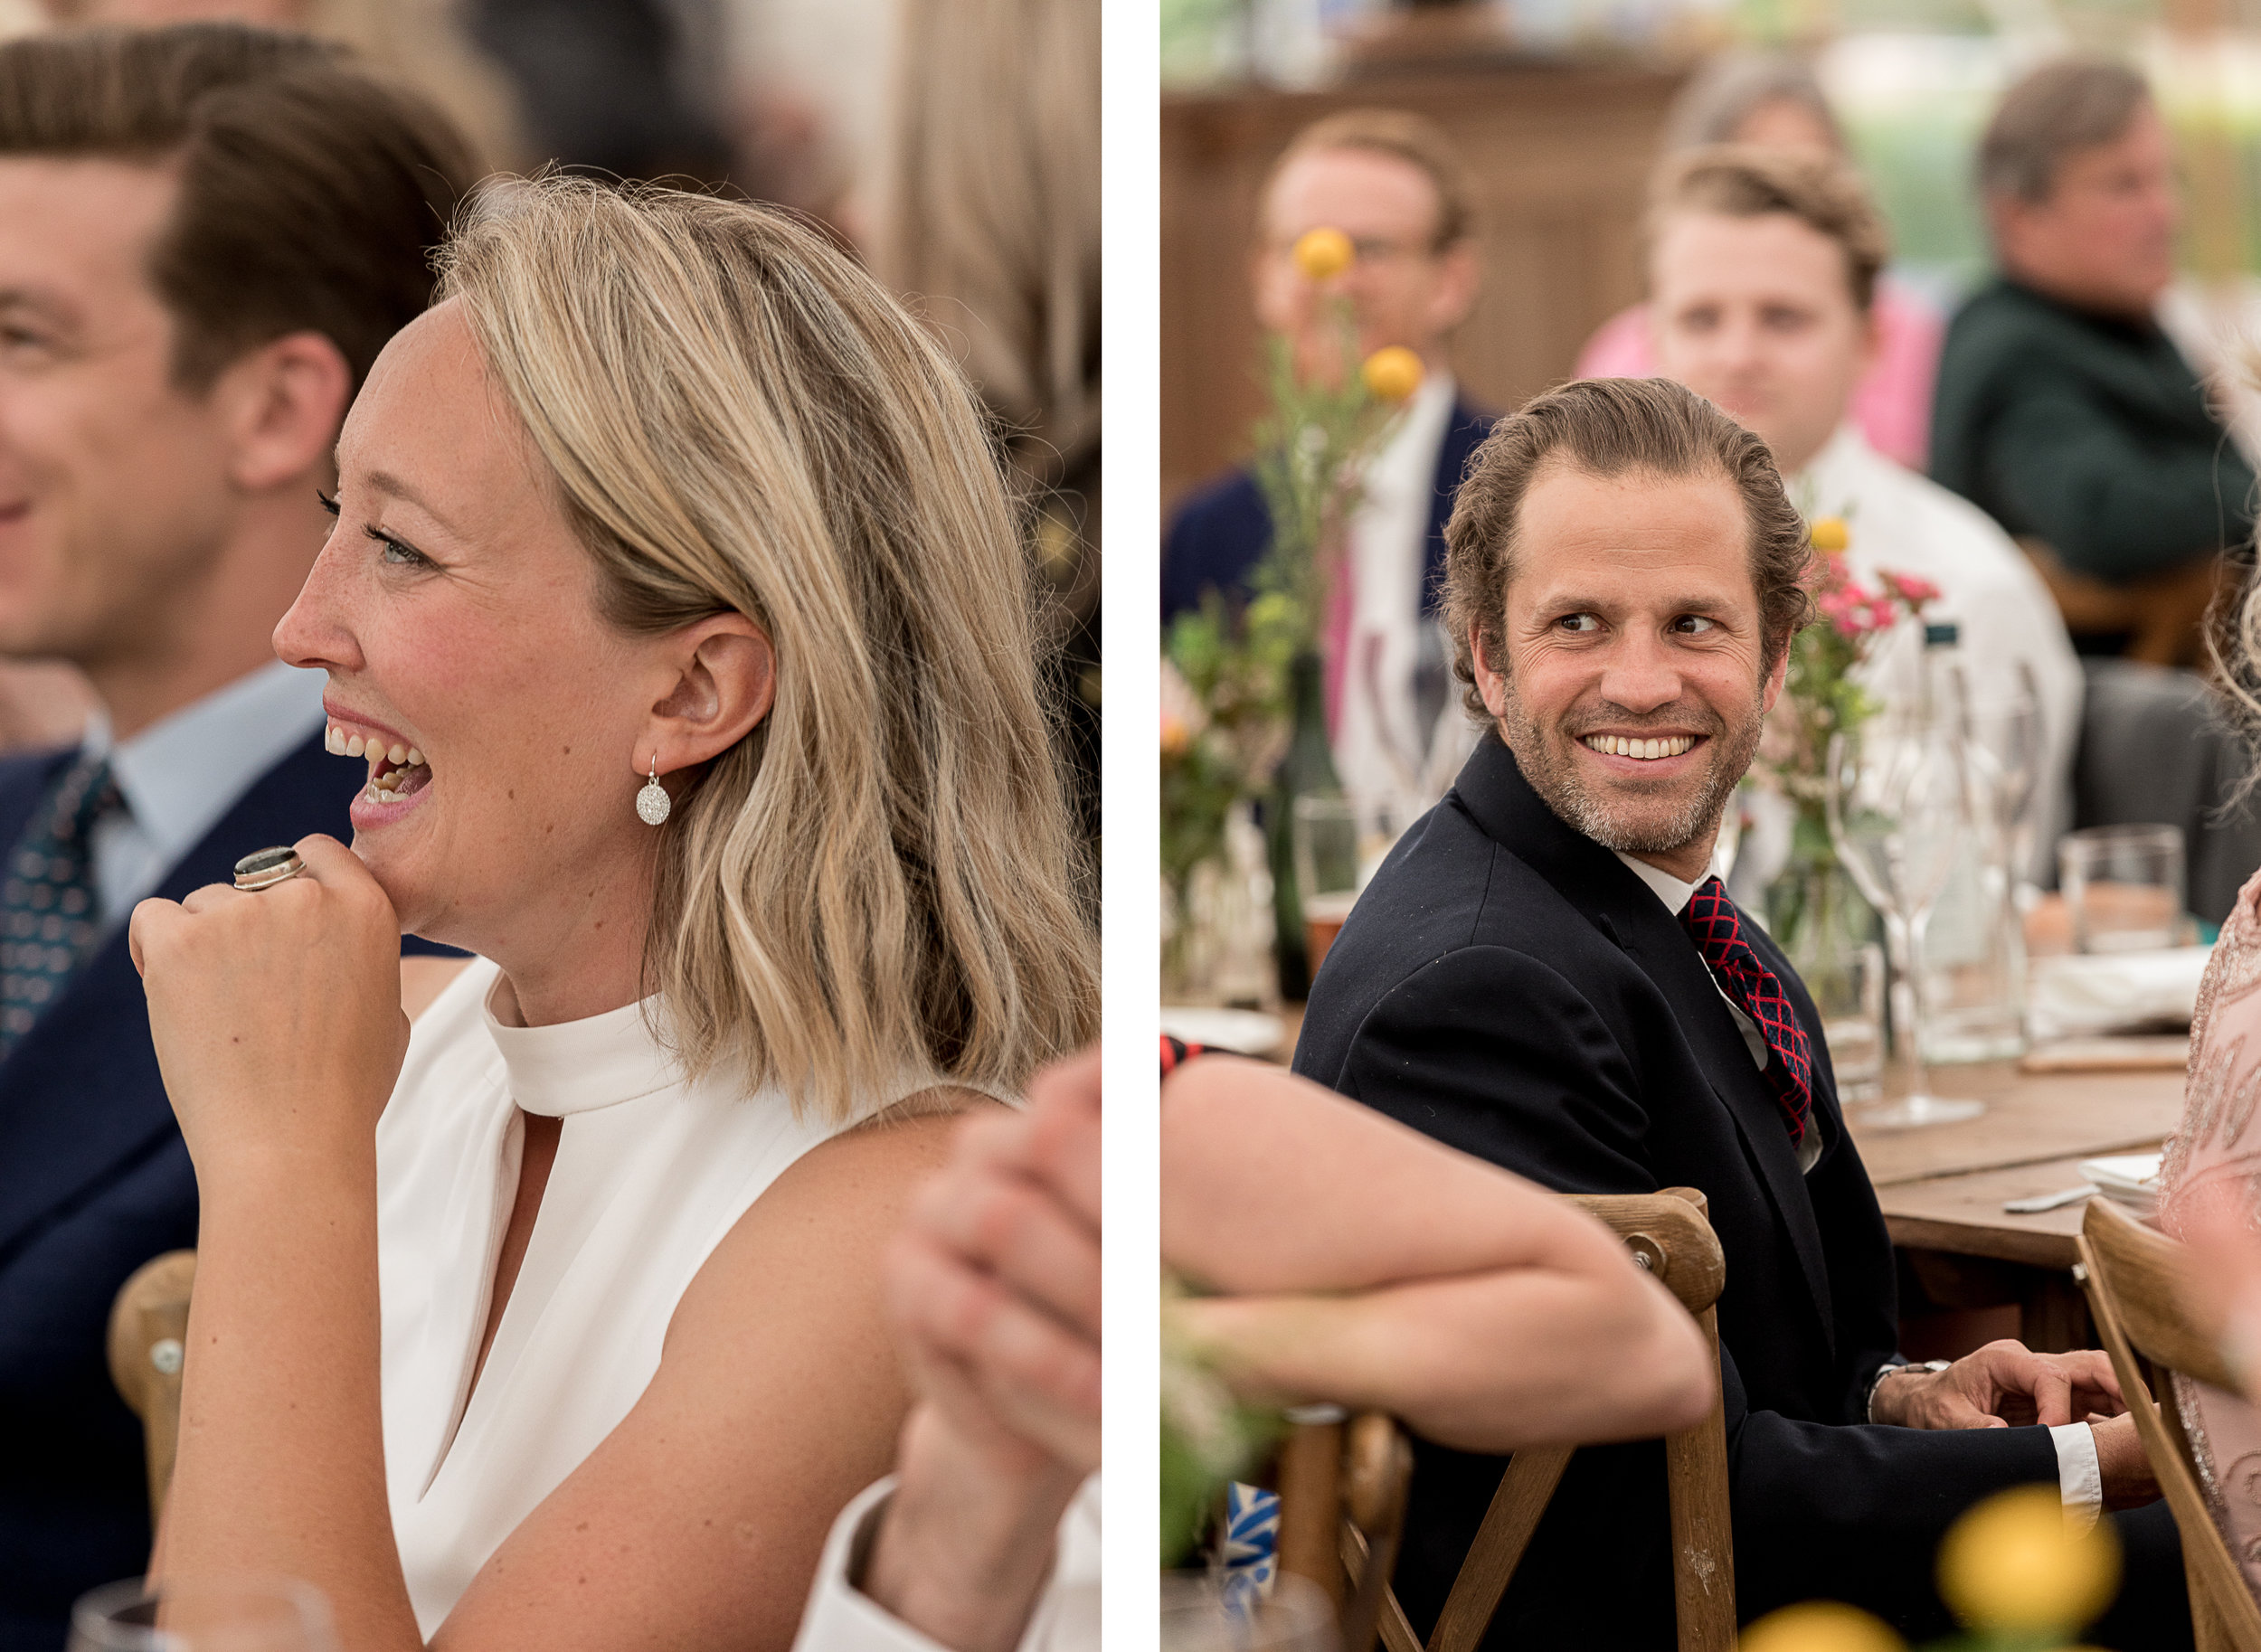 english-wedding-photographer-laughing-during-speeches-guests.jpg